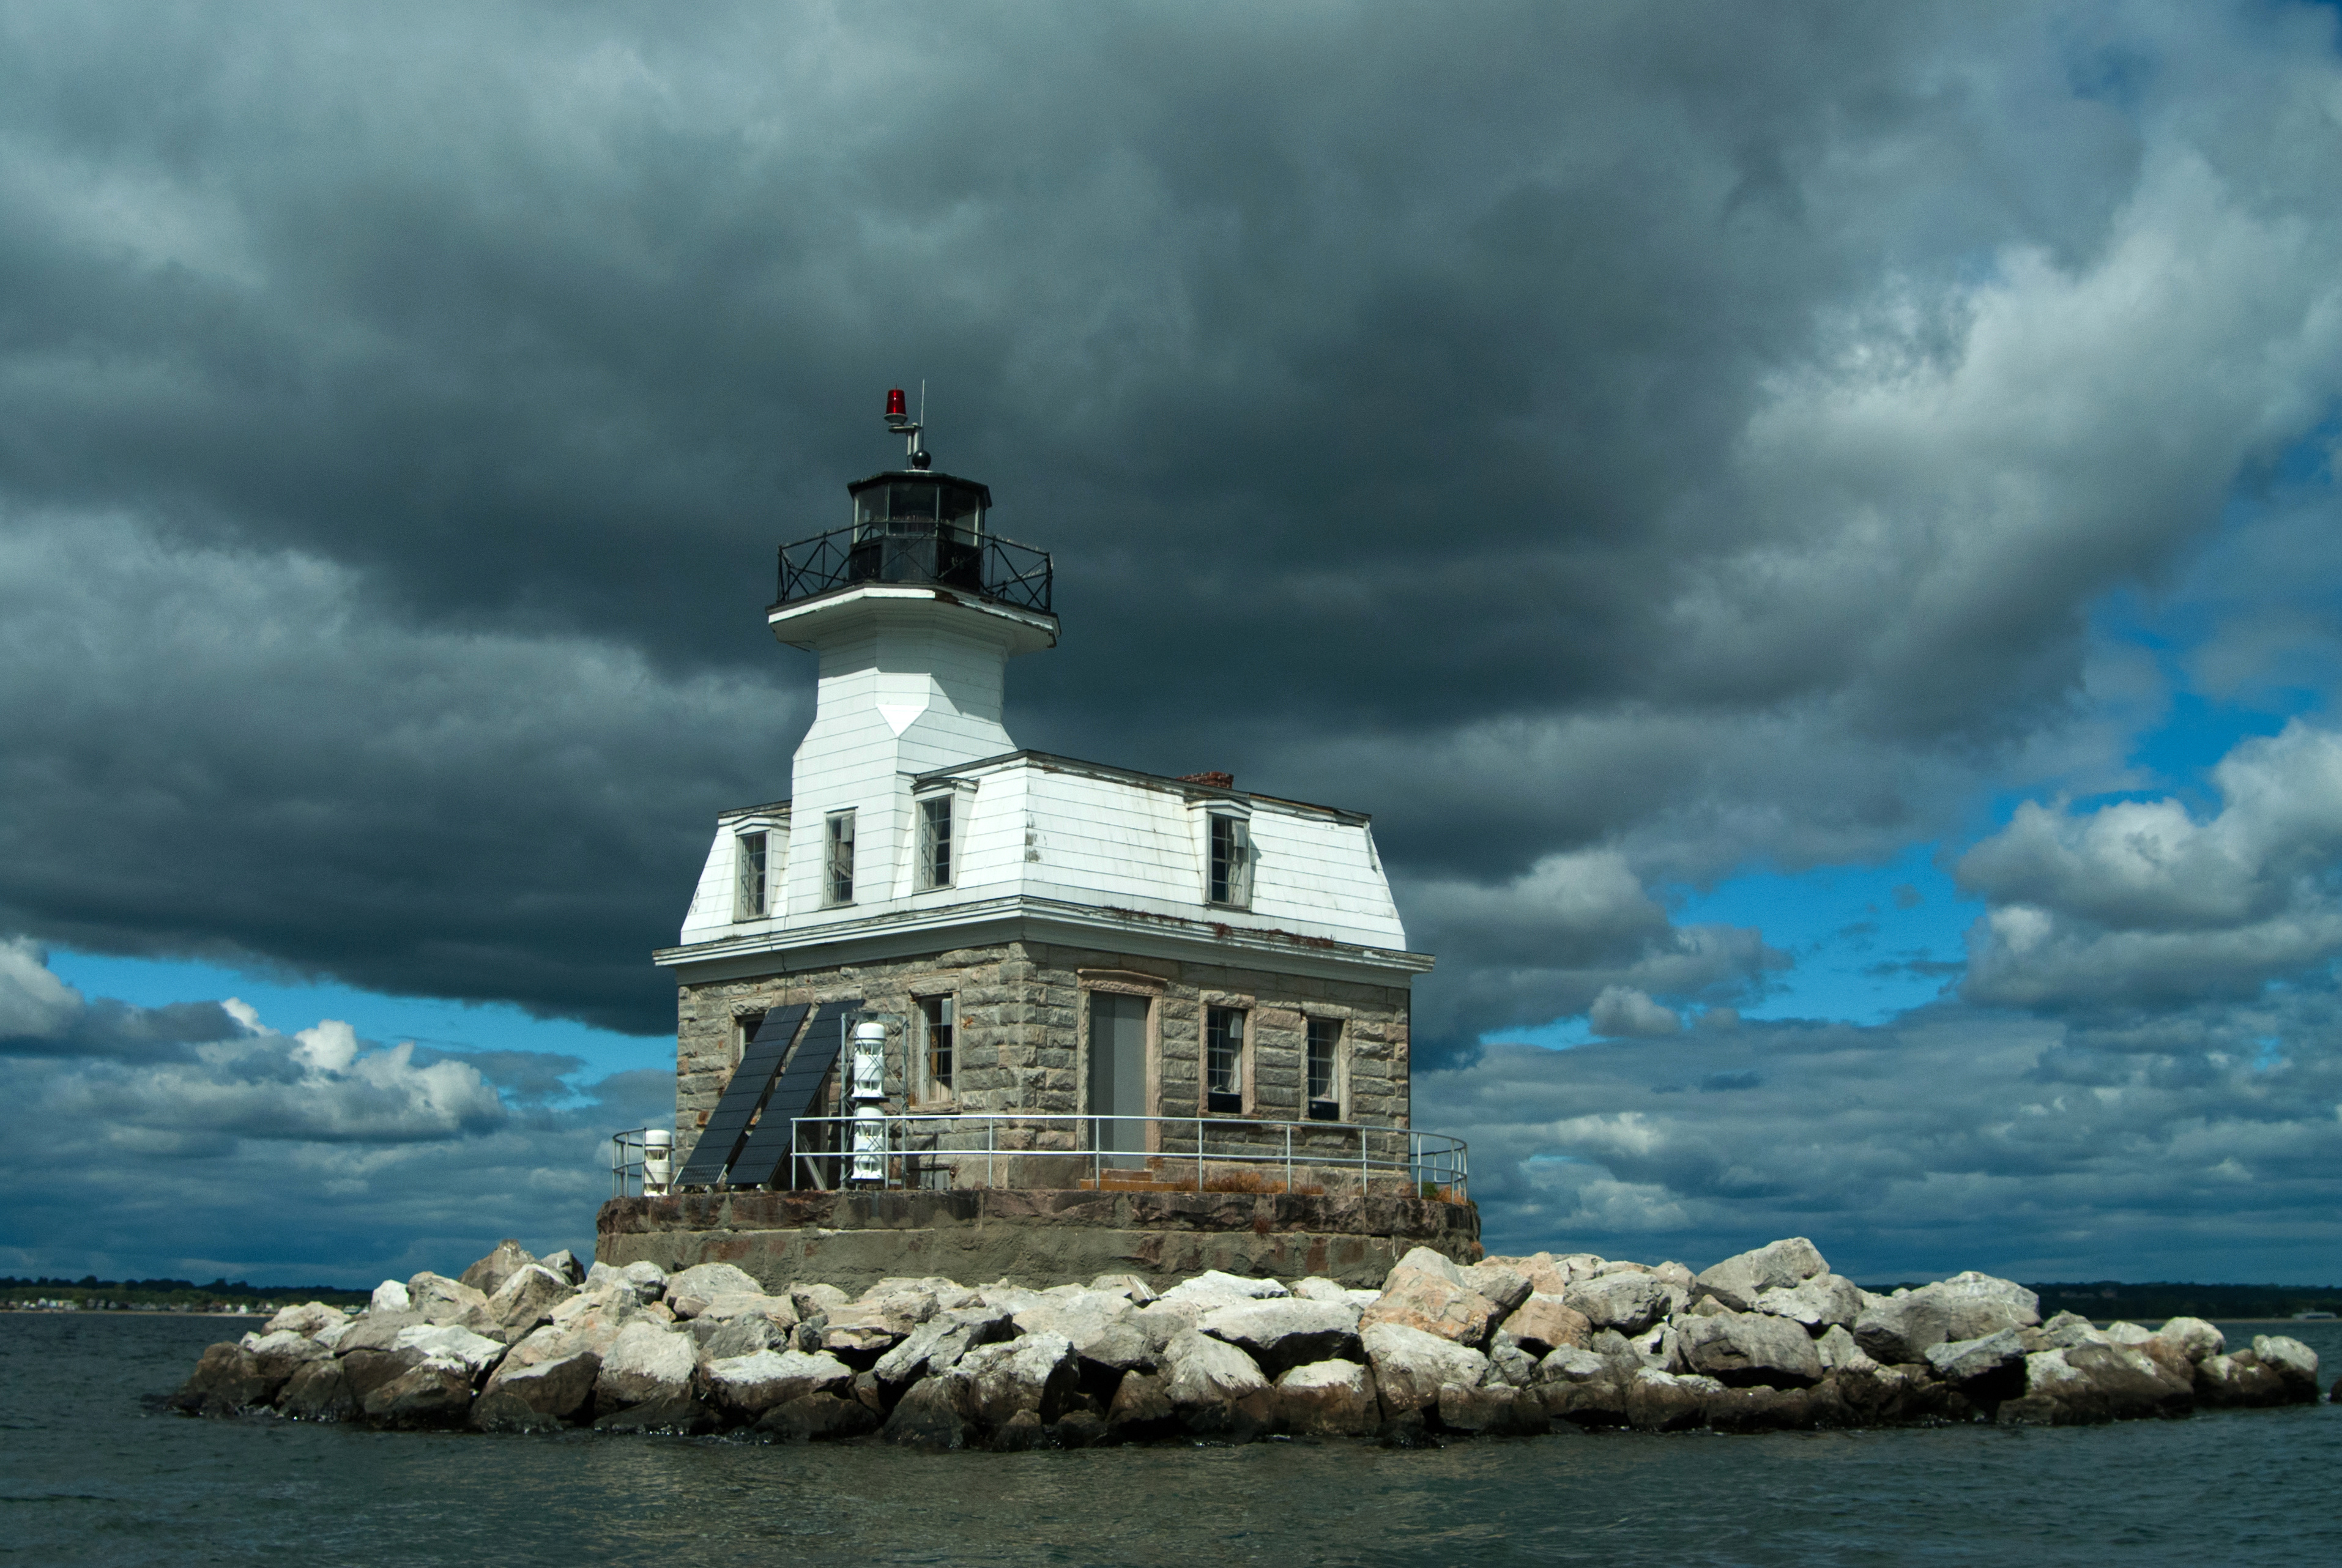 Bill would allow lighthouse to become home for cremated remains